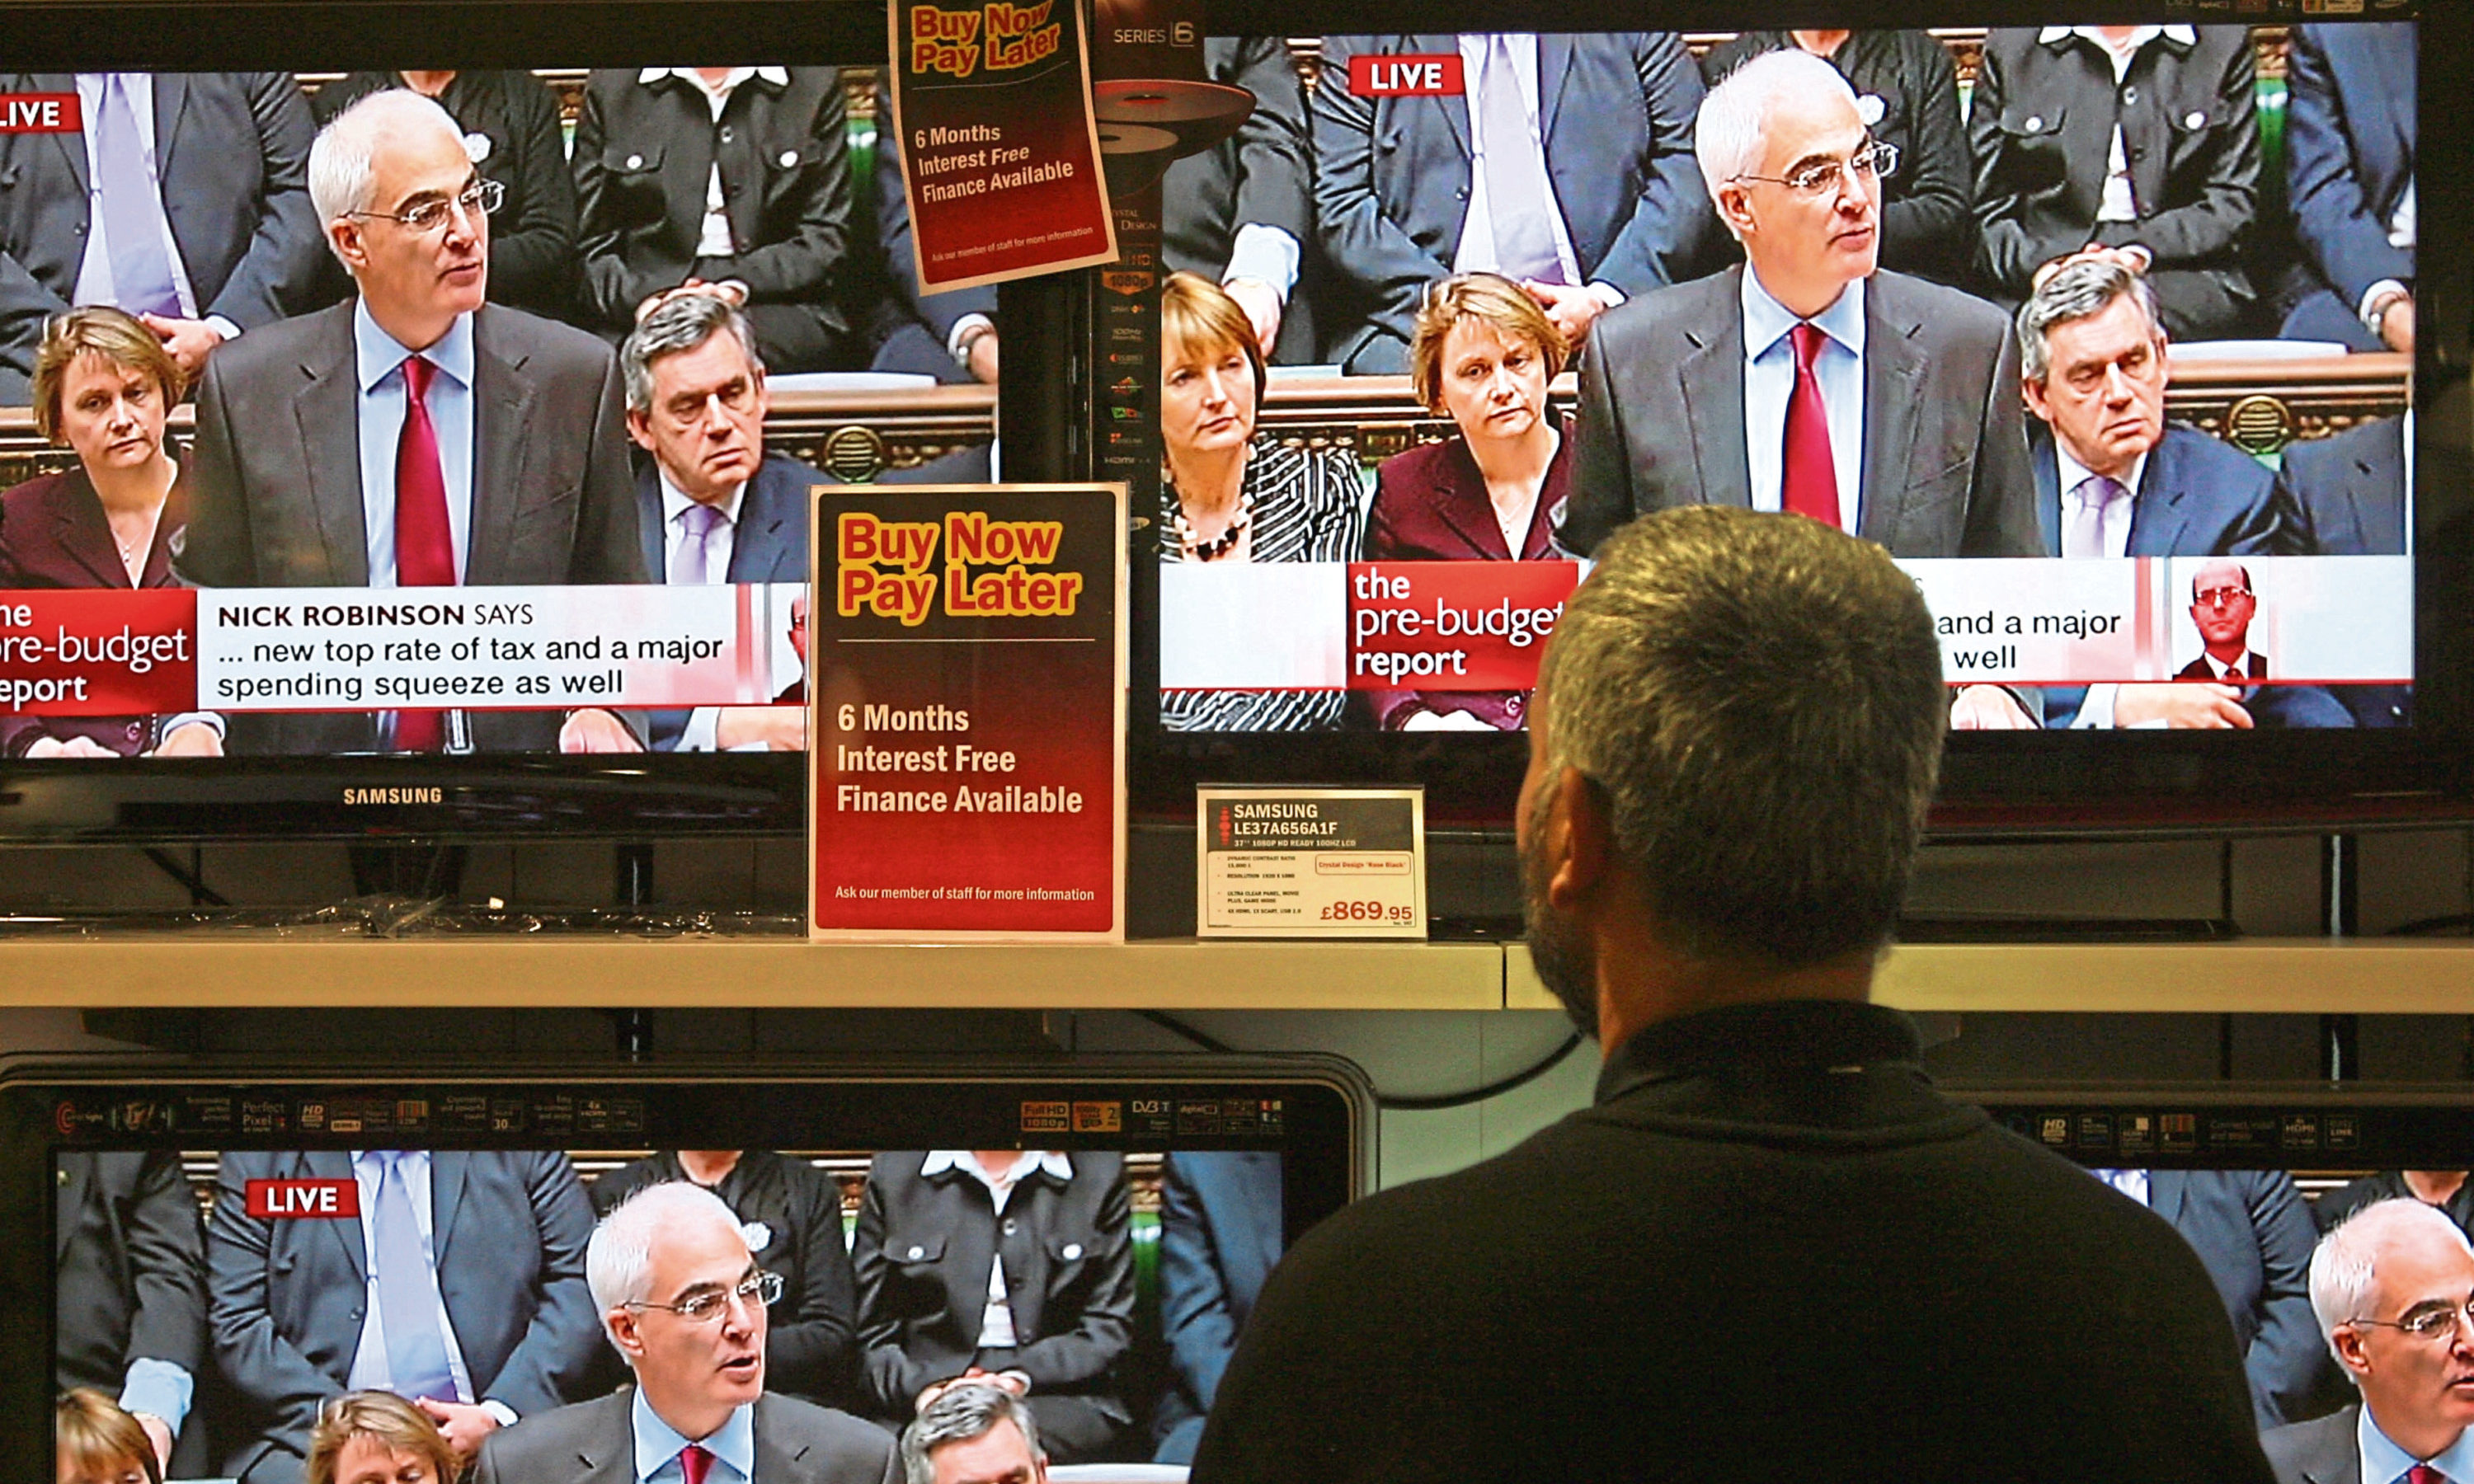 Albert Ram, a salesman at Ask electrical retailers on Tottenham Court Road, cleans the screens of televisions showing the Chancellor of the Exchequer, Alistair Darling, live in Parliament delivering his Pre-Budget Report on November 24, 2008 in London, England.